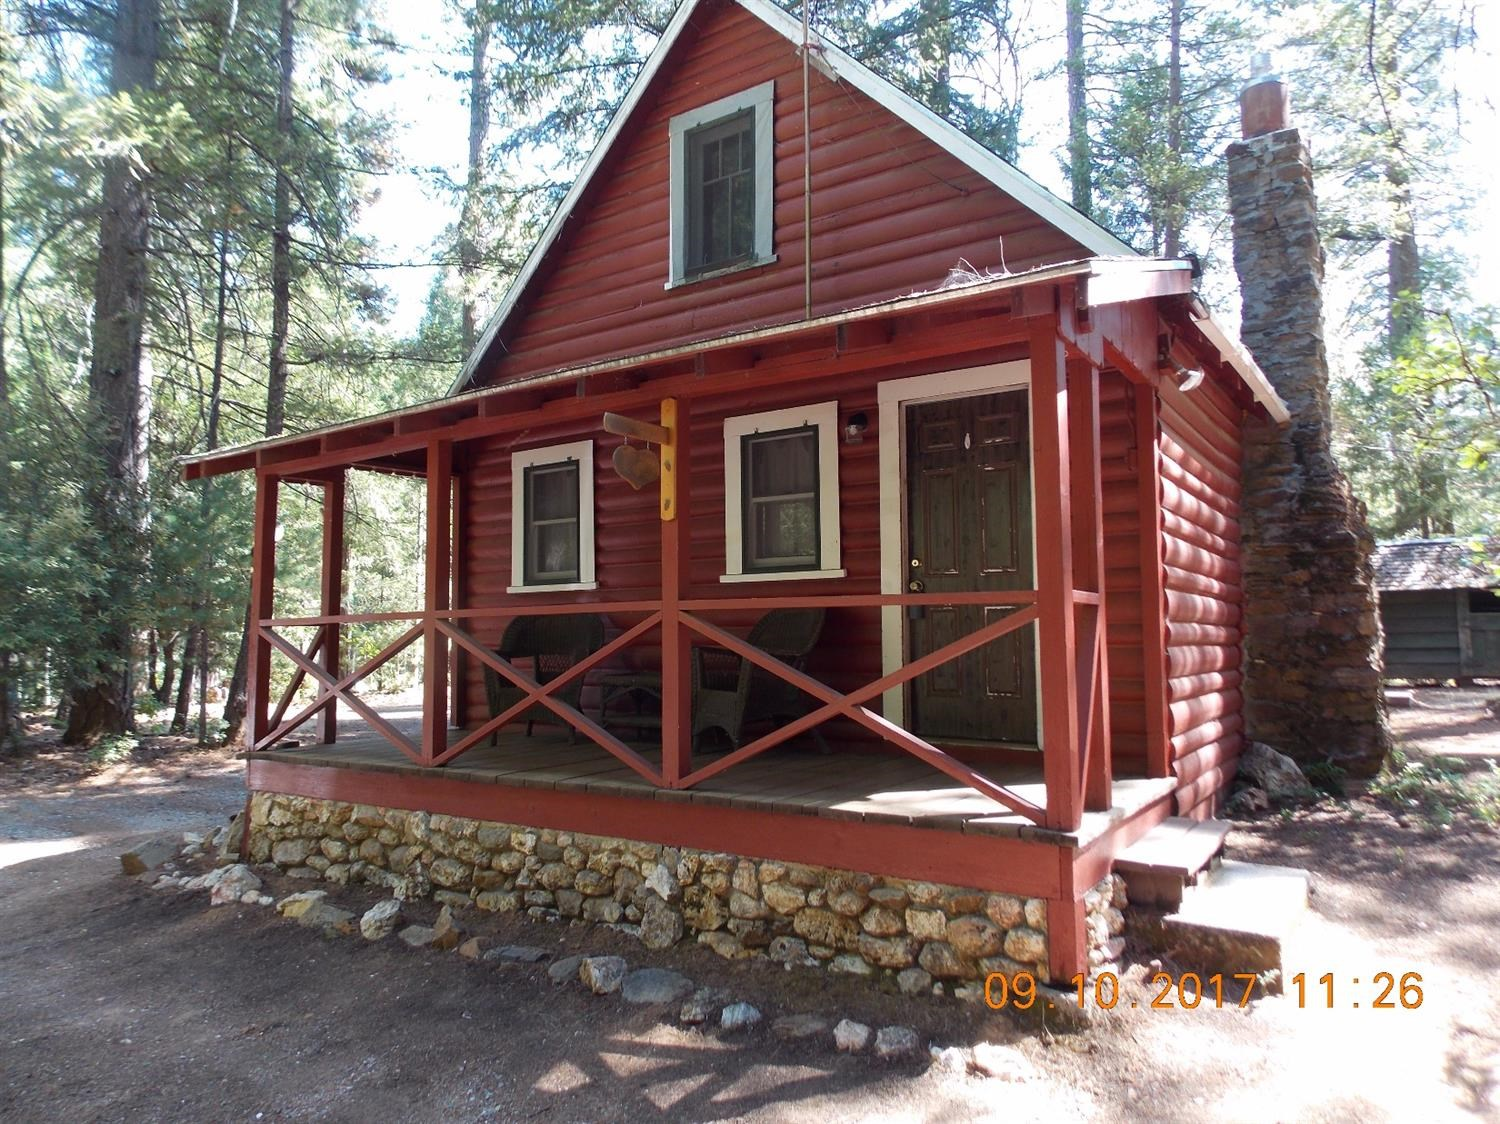 Mountain Vacation Home near Rubicon Trail and Staging Areas